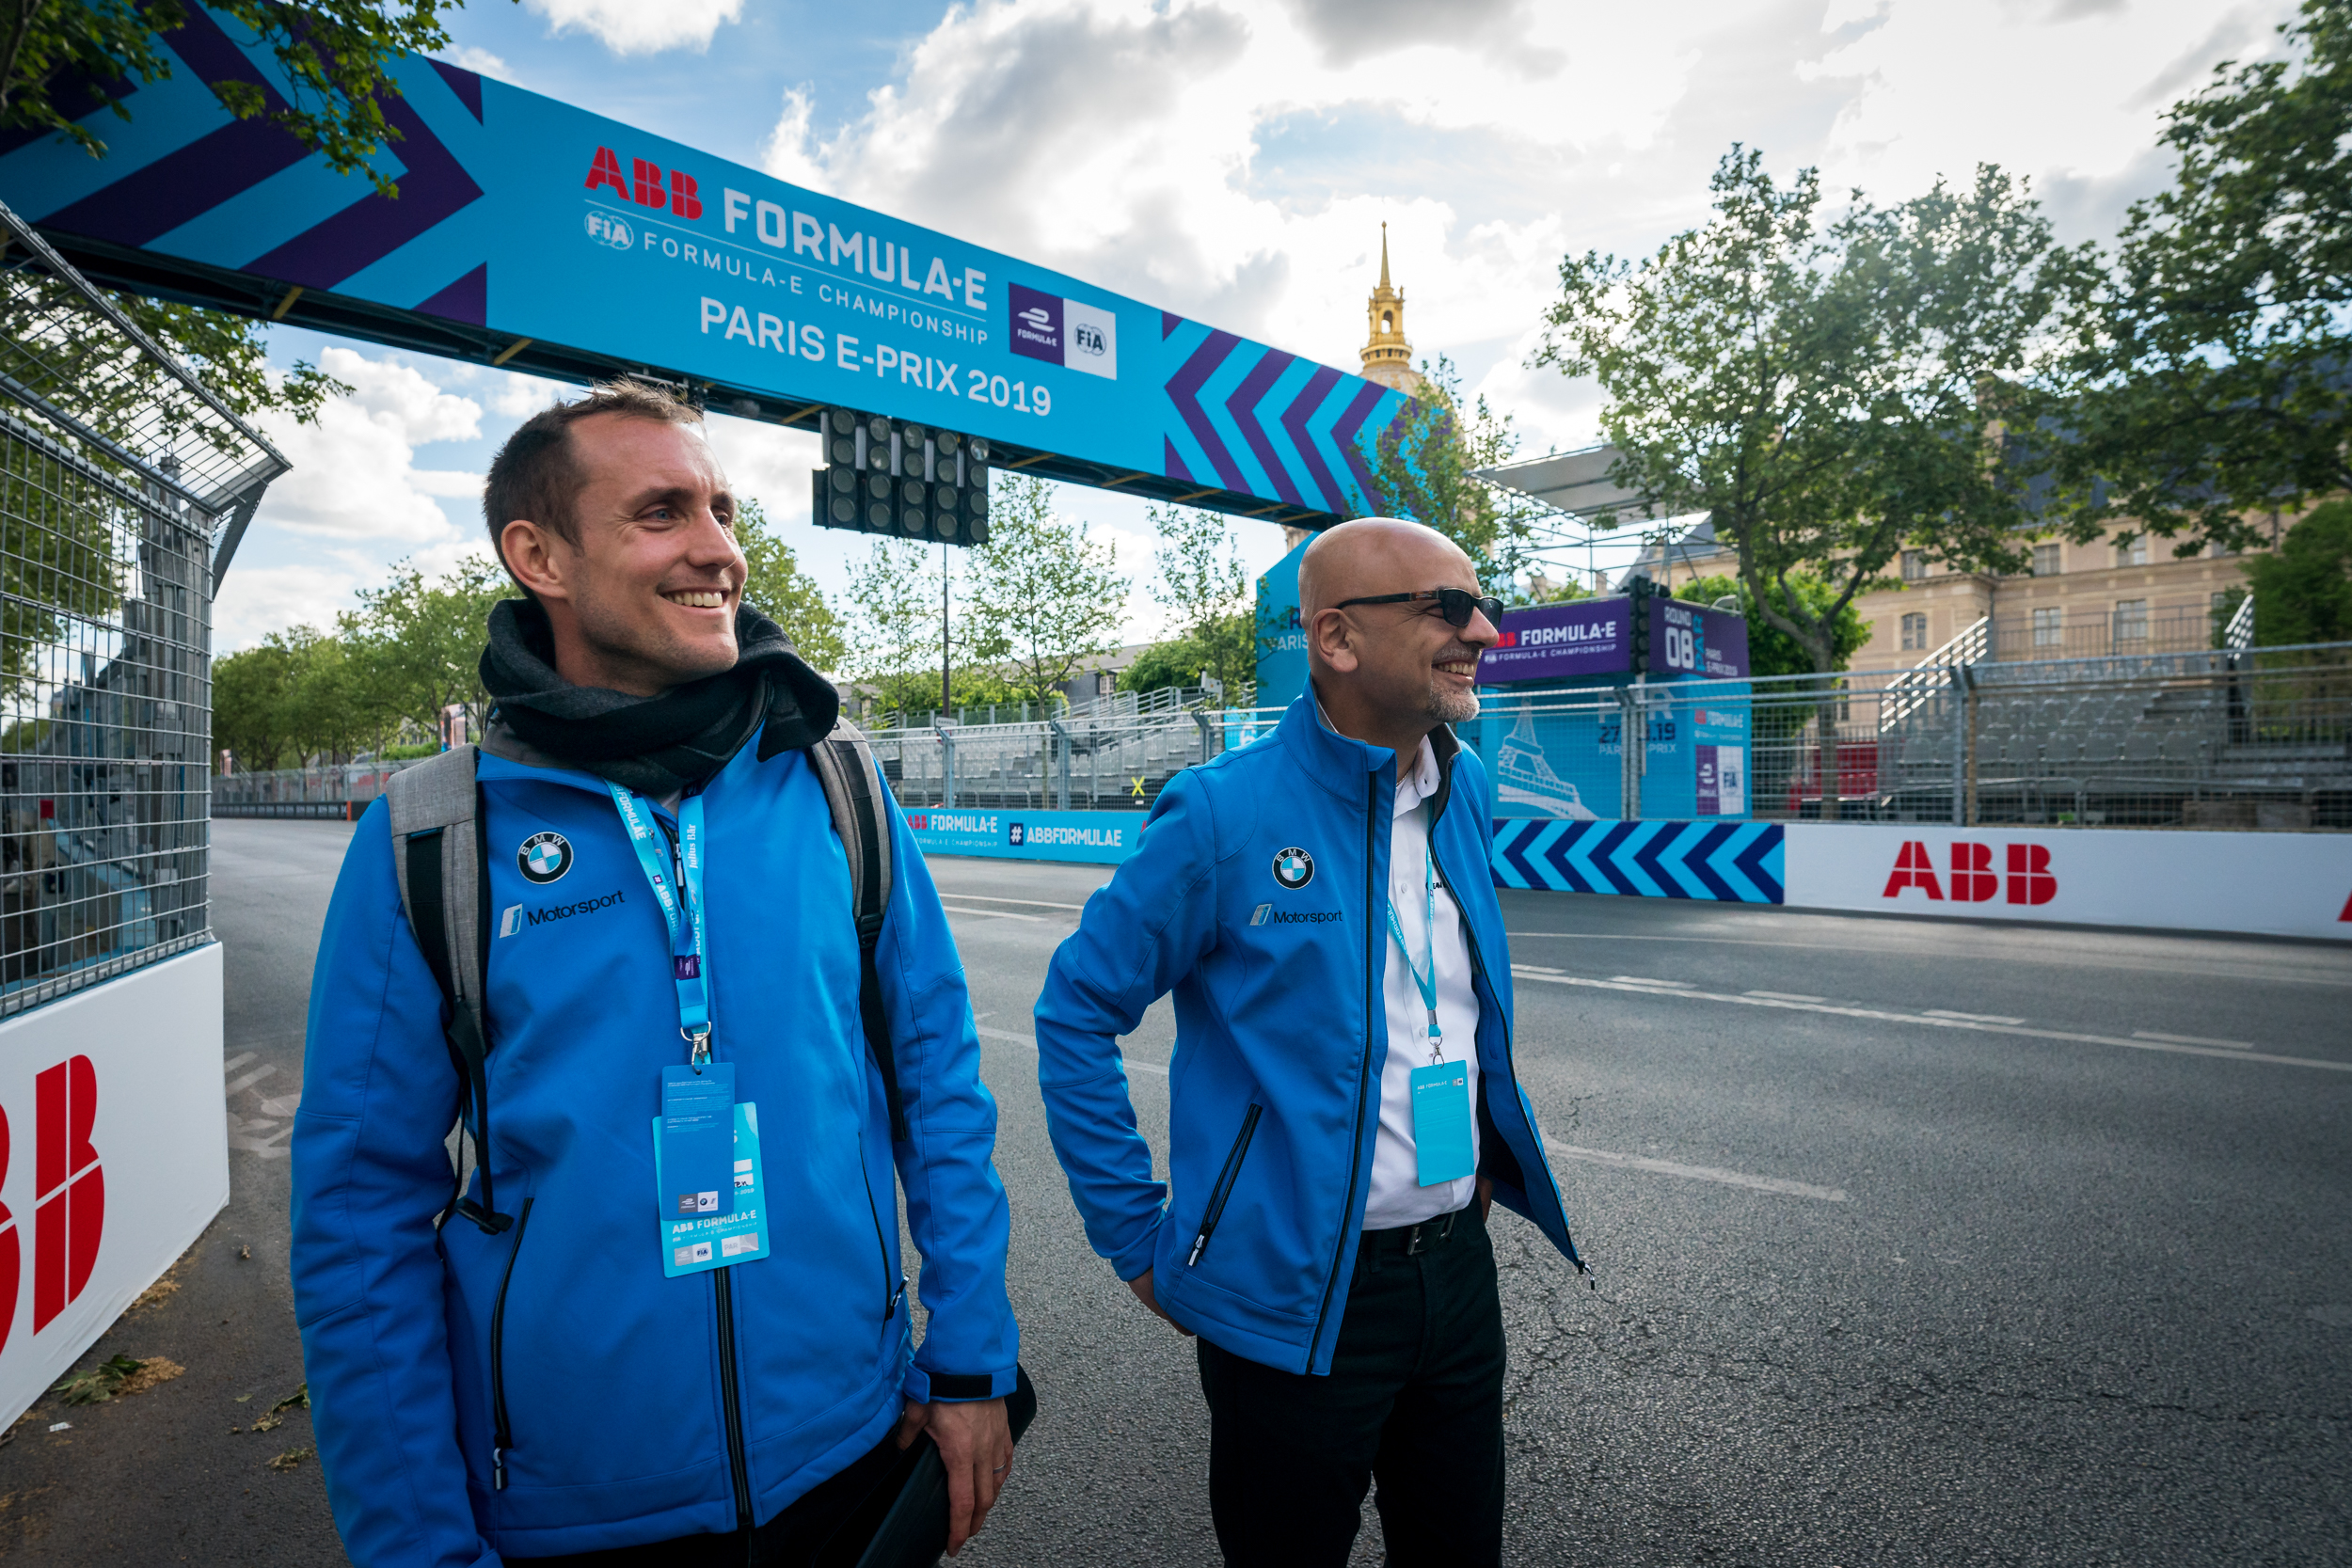 BMW i_Formula E Paris 2019_26&27-04-19_Florian Leger_SHARE & DARE_HD_N°-123.jpg